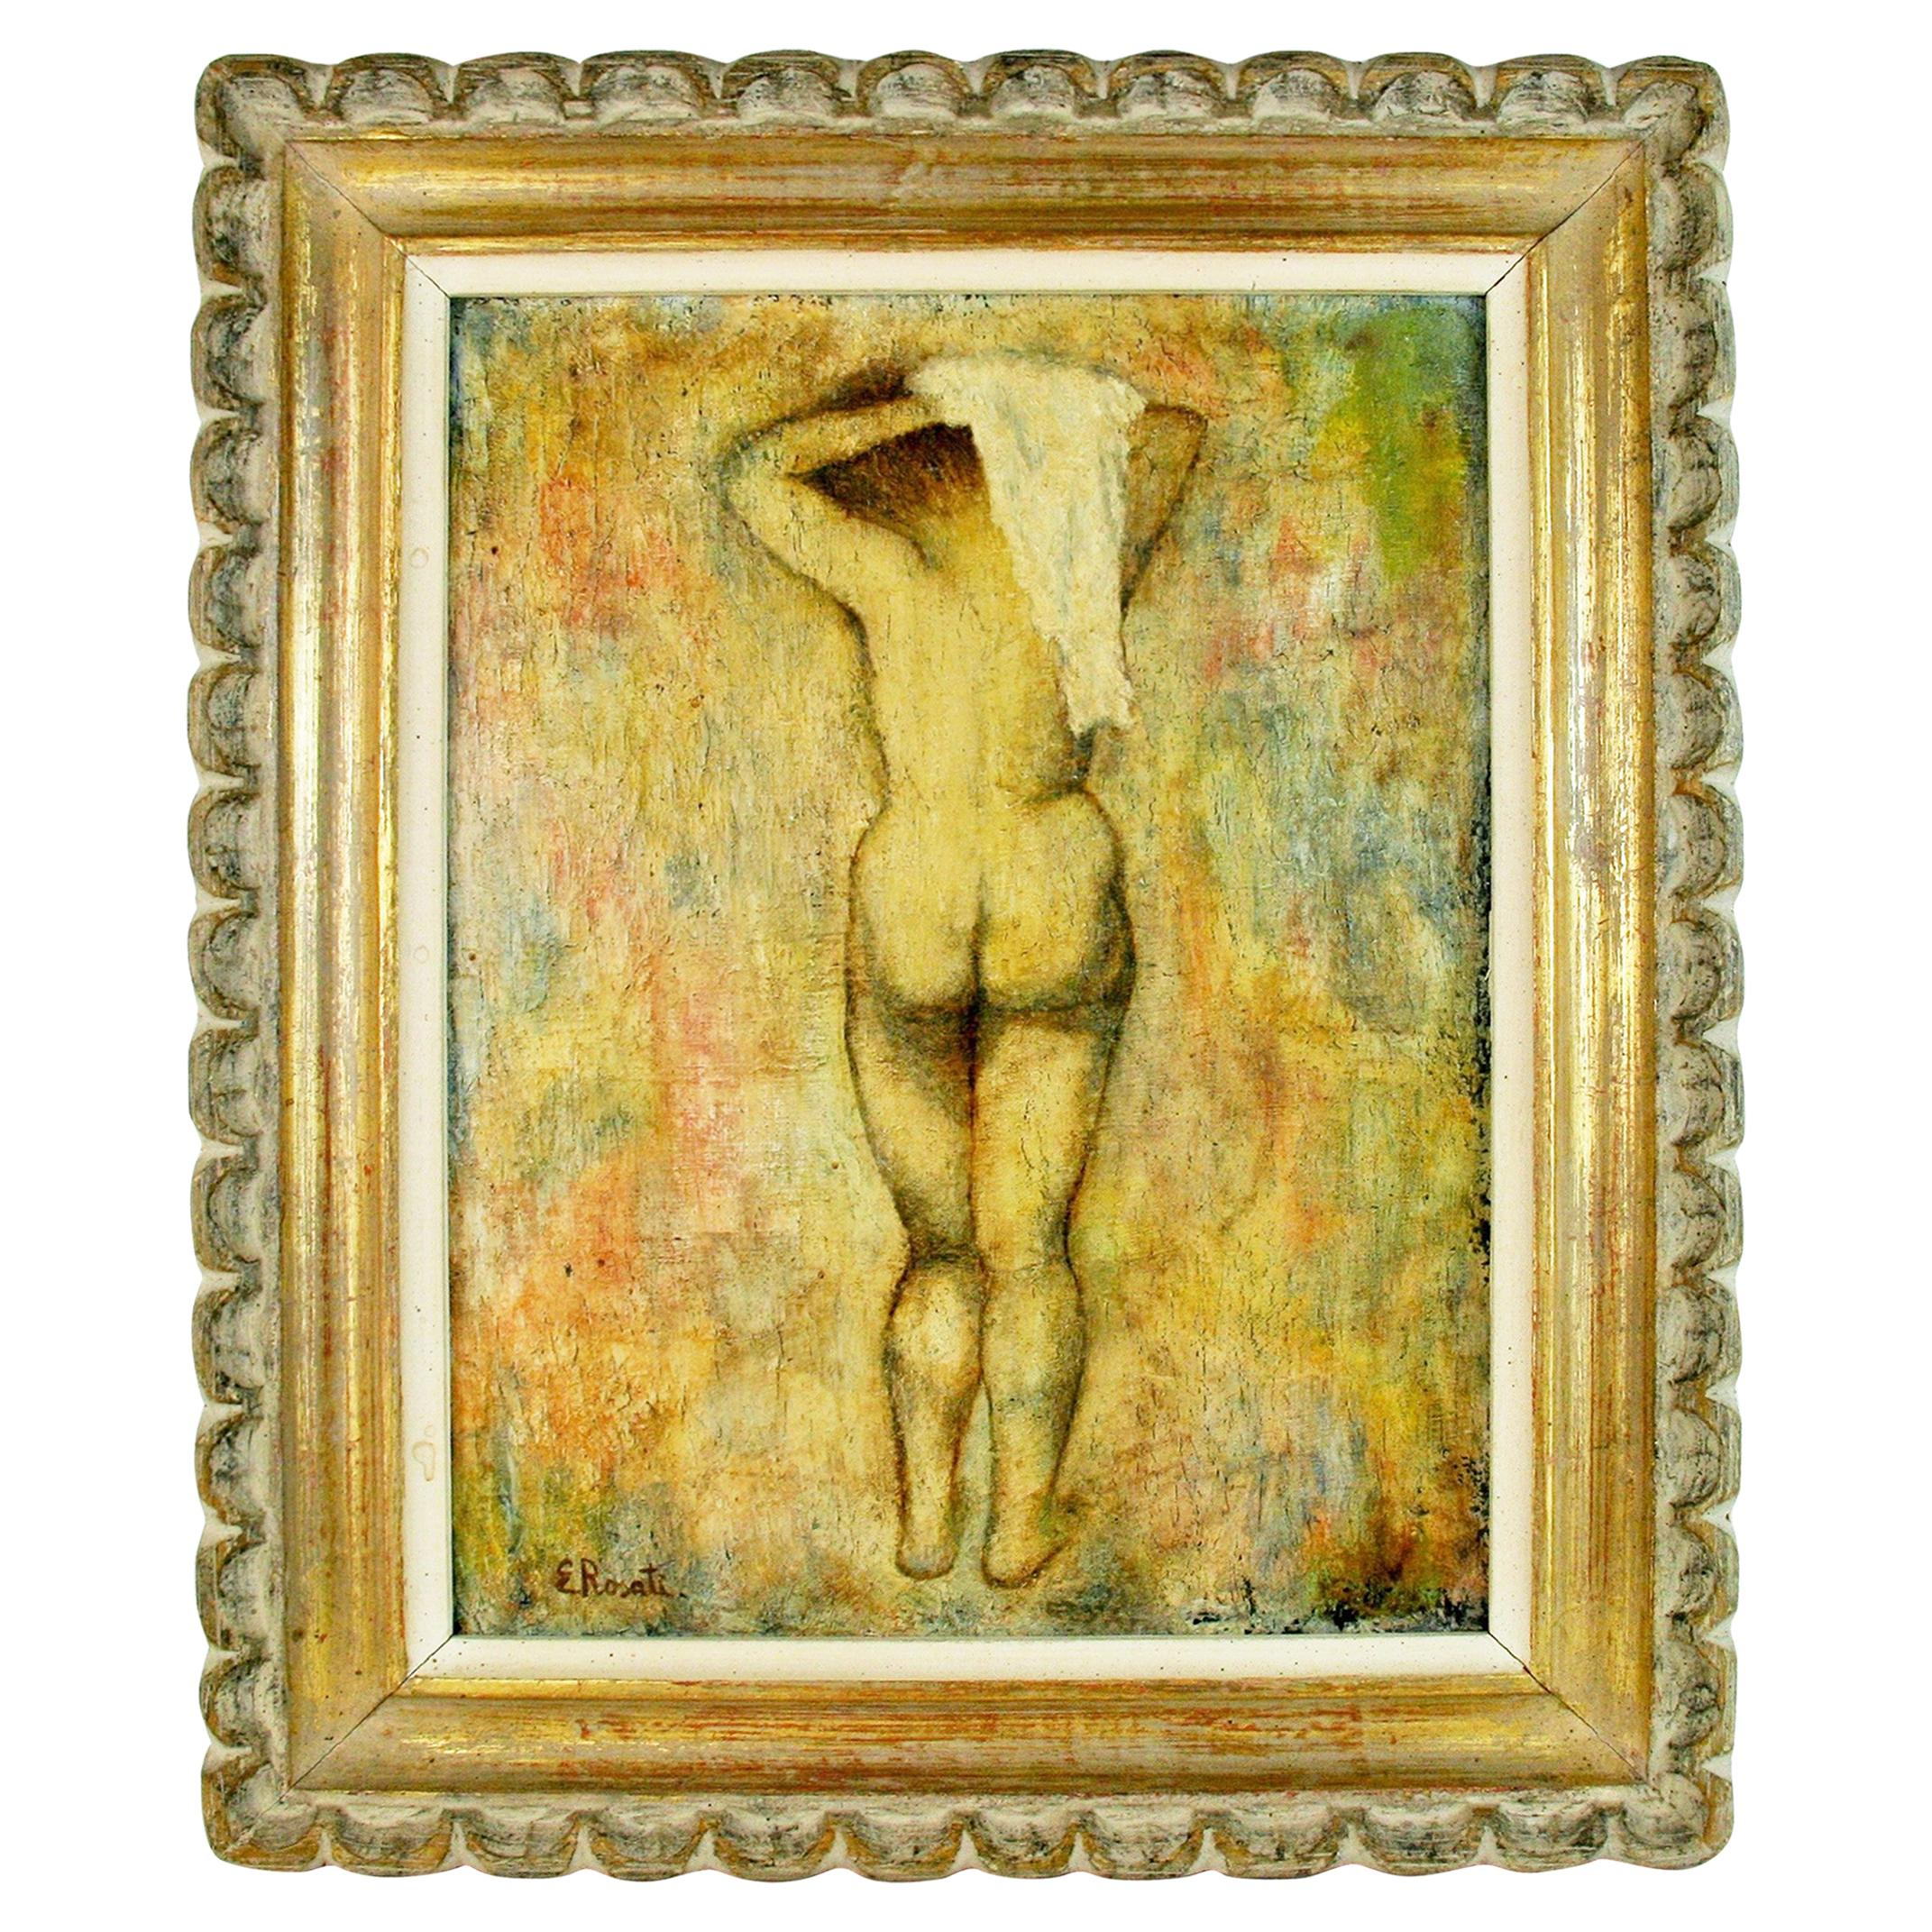 After The Bath Nude, 1940